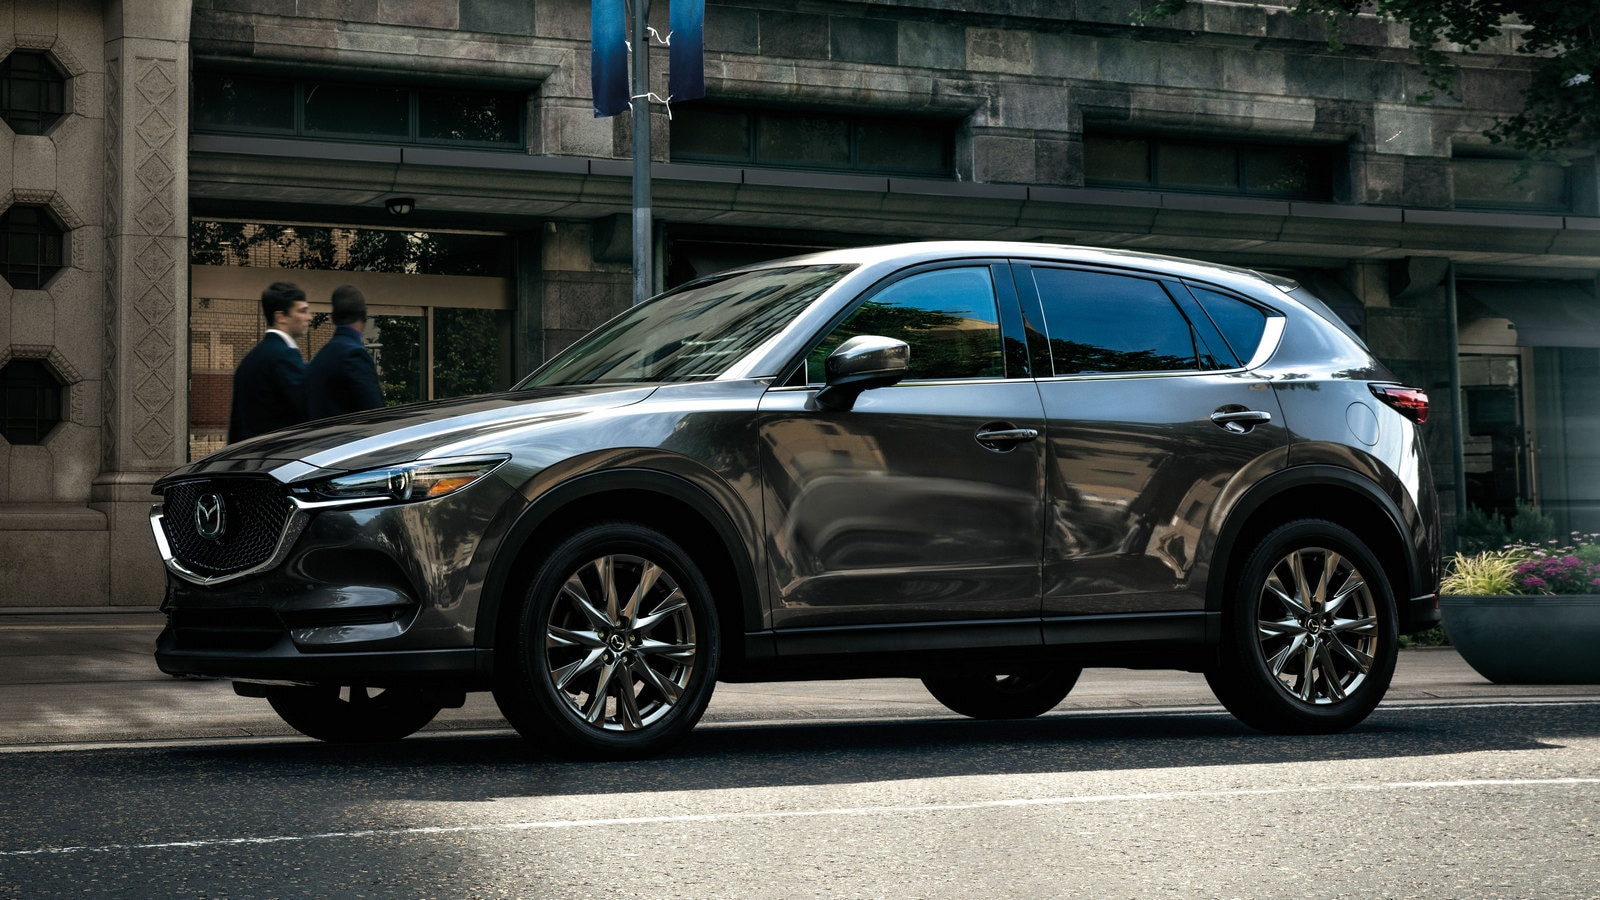 2020 Mazda CX-5 vs. 2020 Ford Escape Comparison | Kelley ...